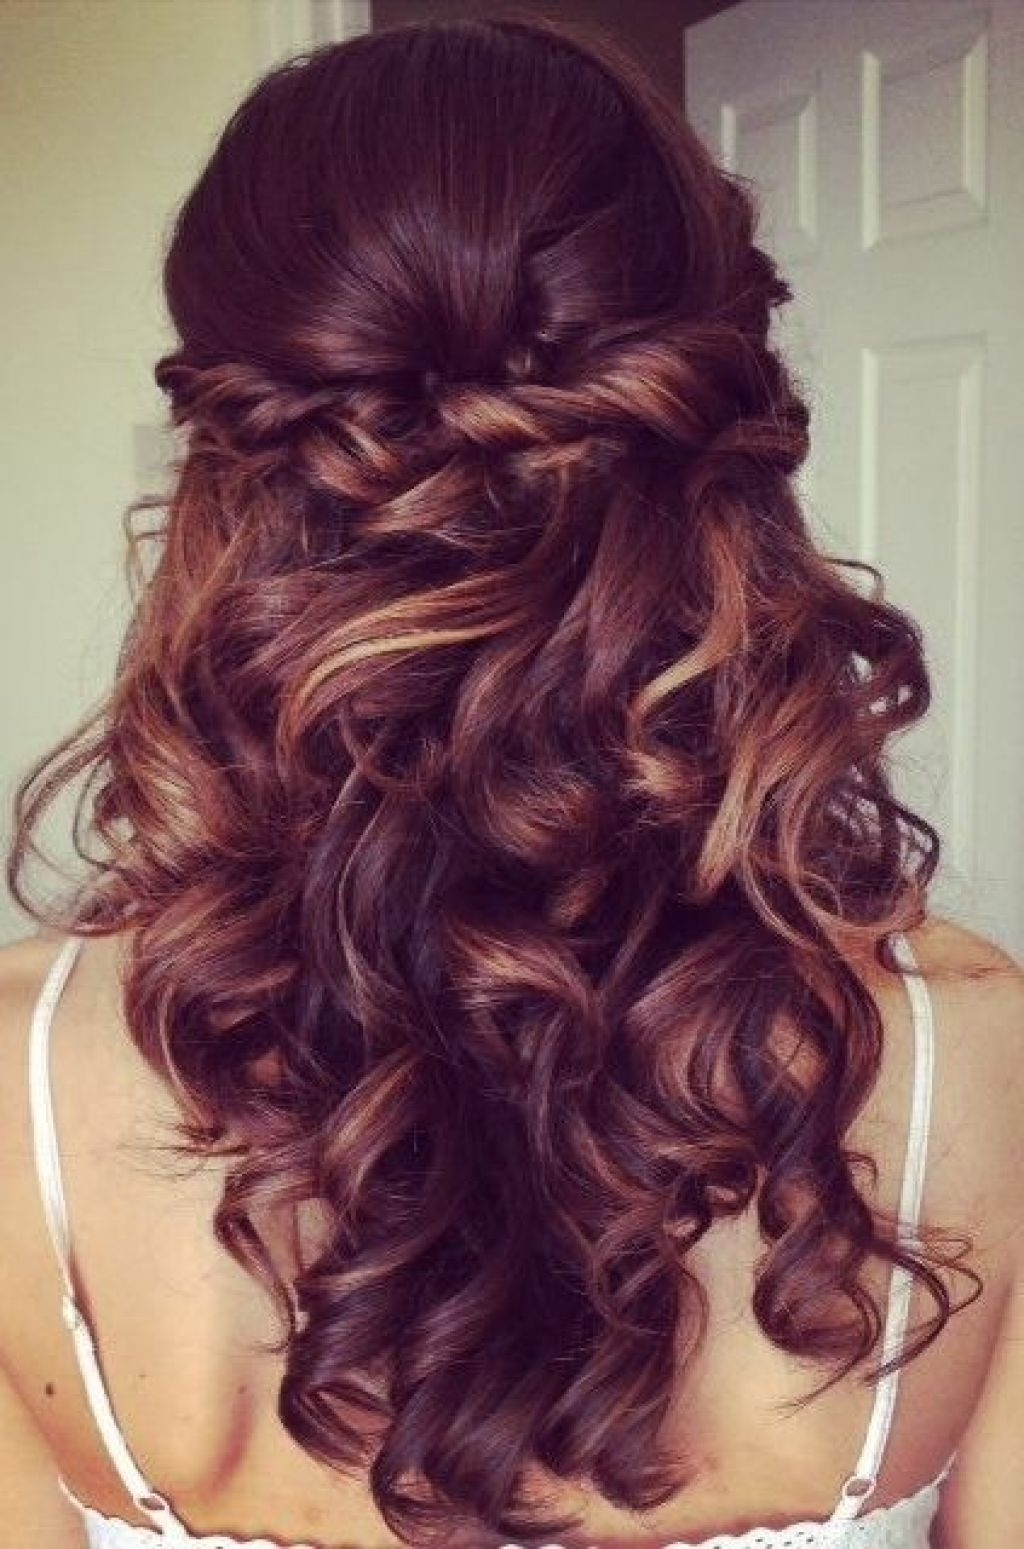 Half Up Down Prom Hairstyles Can Elegant Cute Formal Hair Curly Pertaining To Famous Half Up Wedding Hairstyles Long Curly Hair (View 8 of 15)